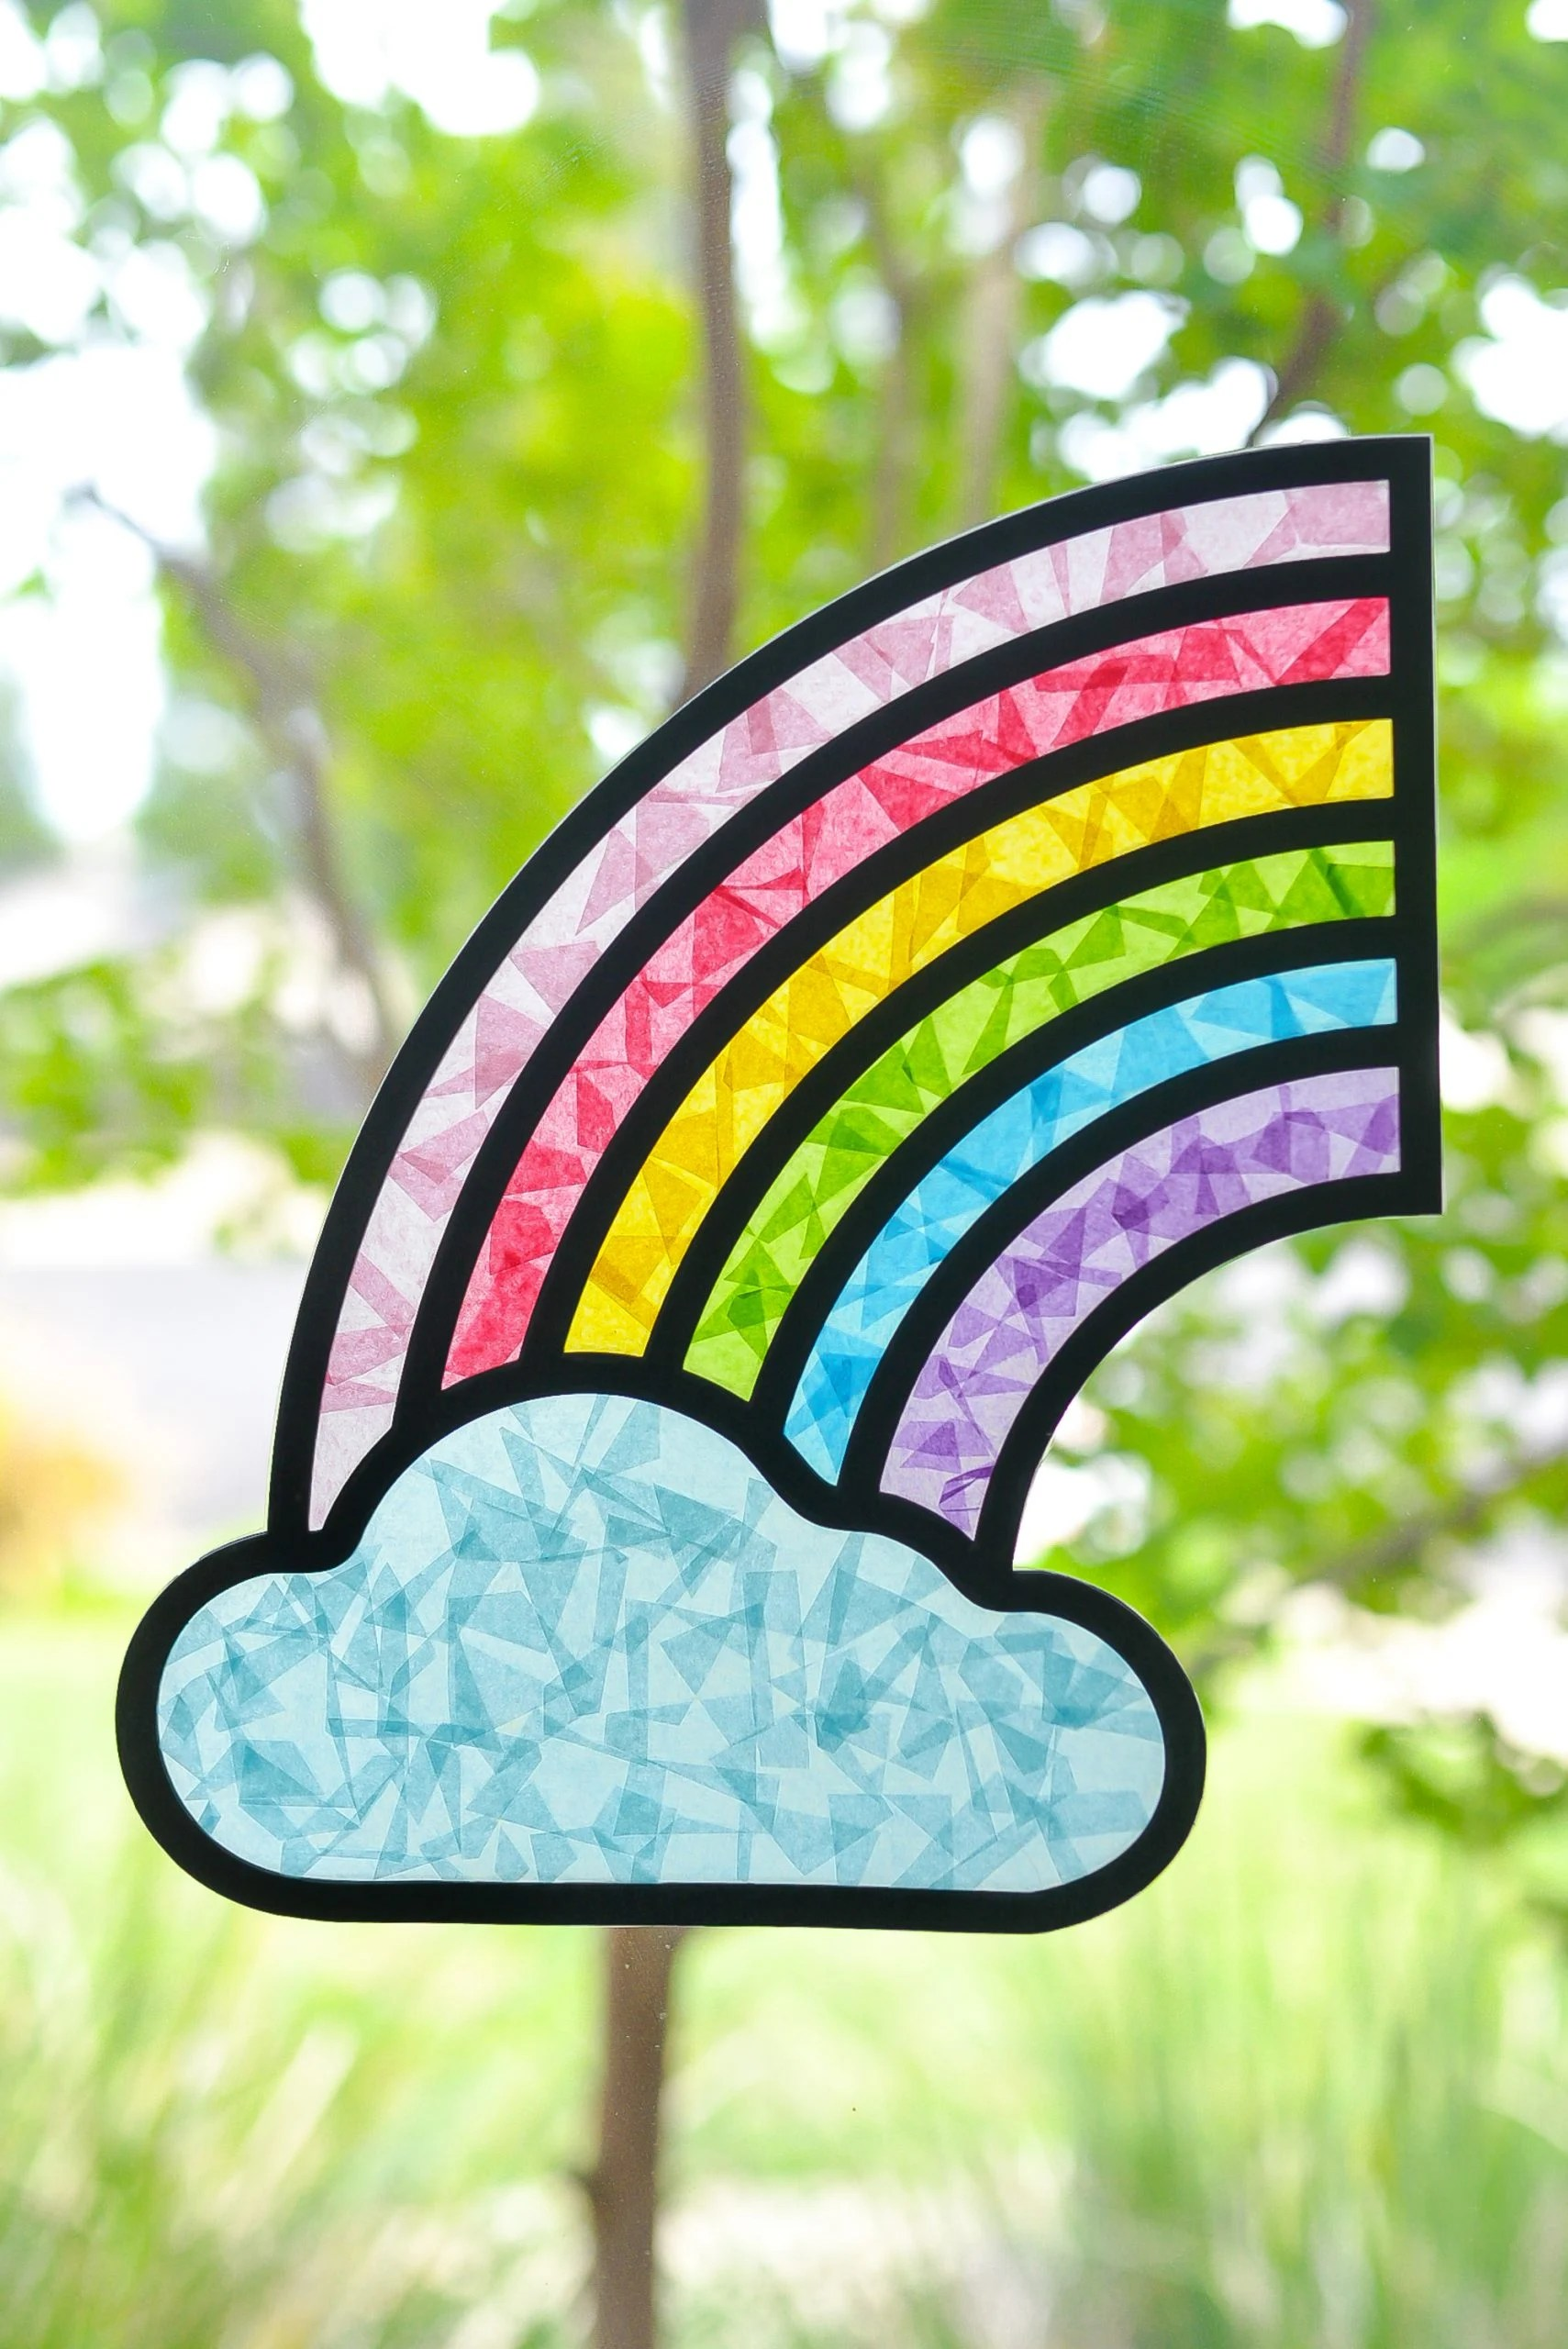 Add a little happiness to your window with this DIY rainbow suncatcher! Cut the frame with your Cricut Explore or Maker, and then use contact paper and tissue paper to create the colorful rainbow!